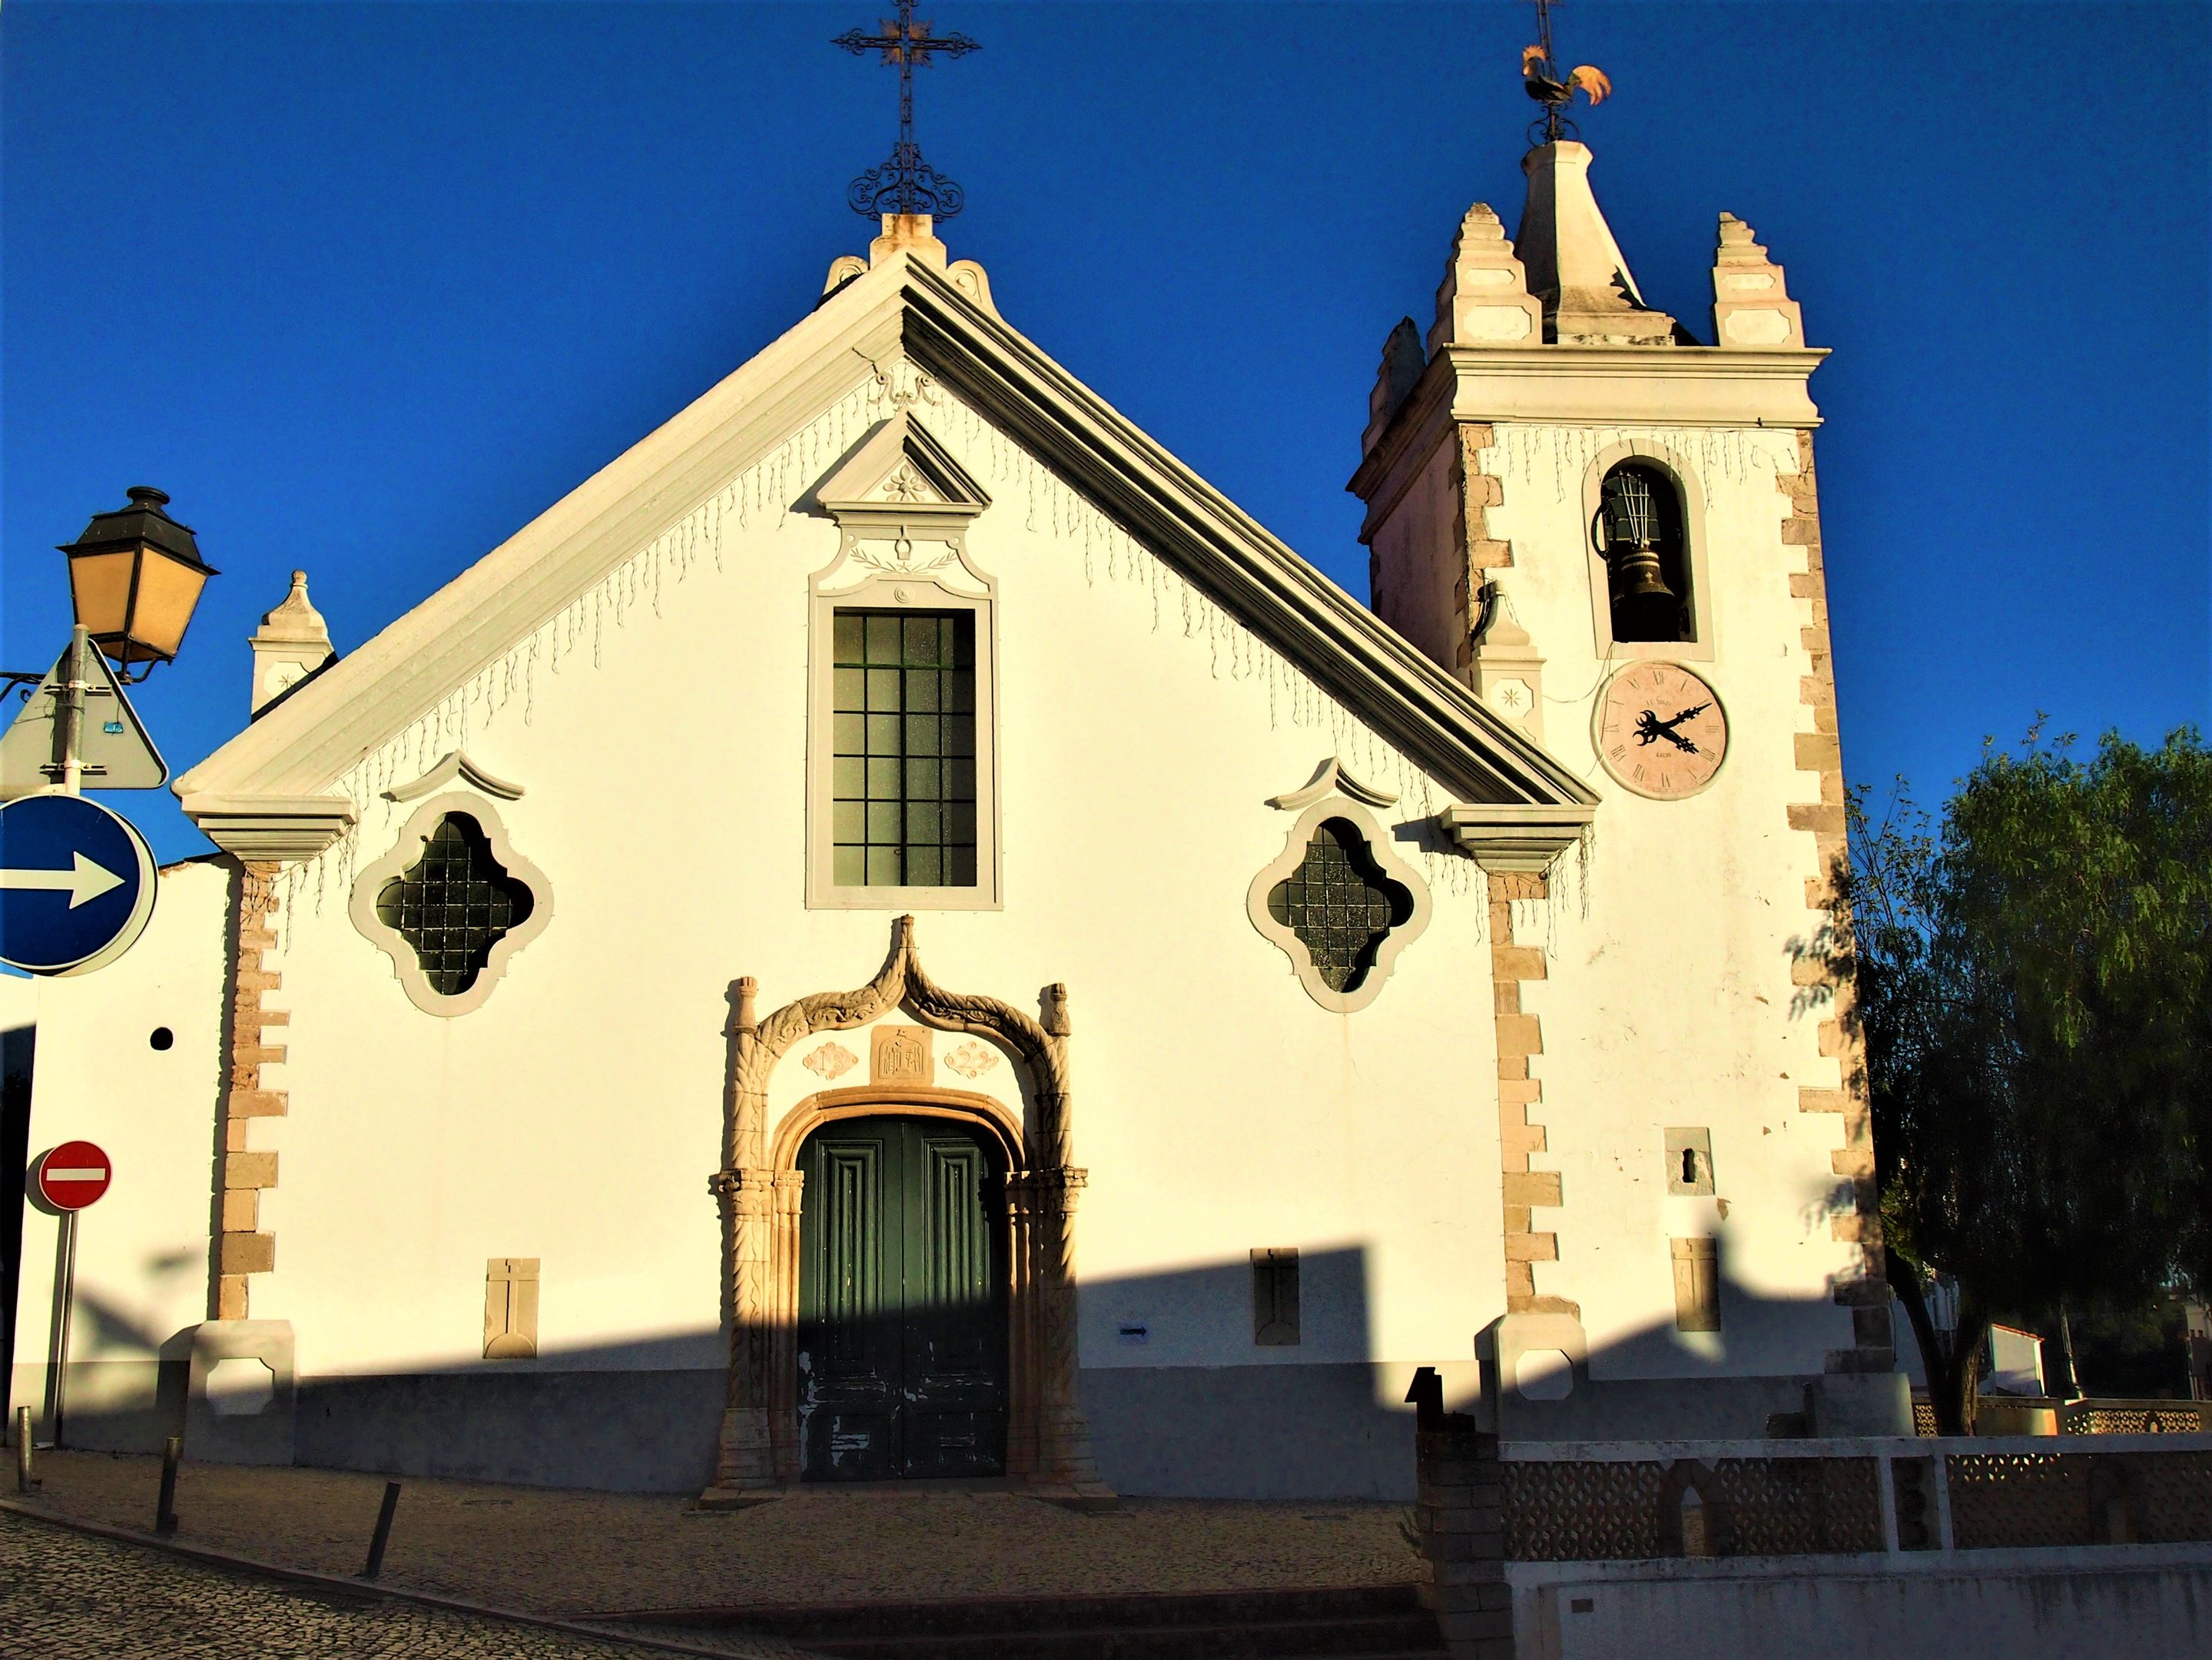 Igreja Matriz de Alte - The Mother Church in Alte, Algarve